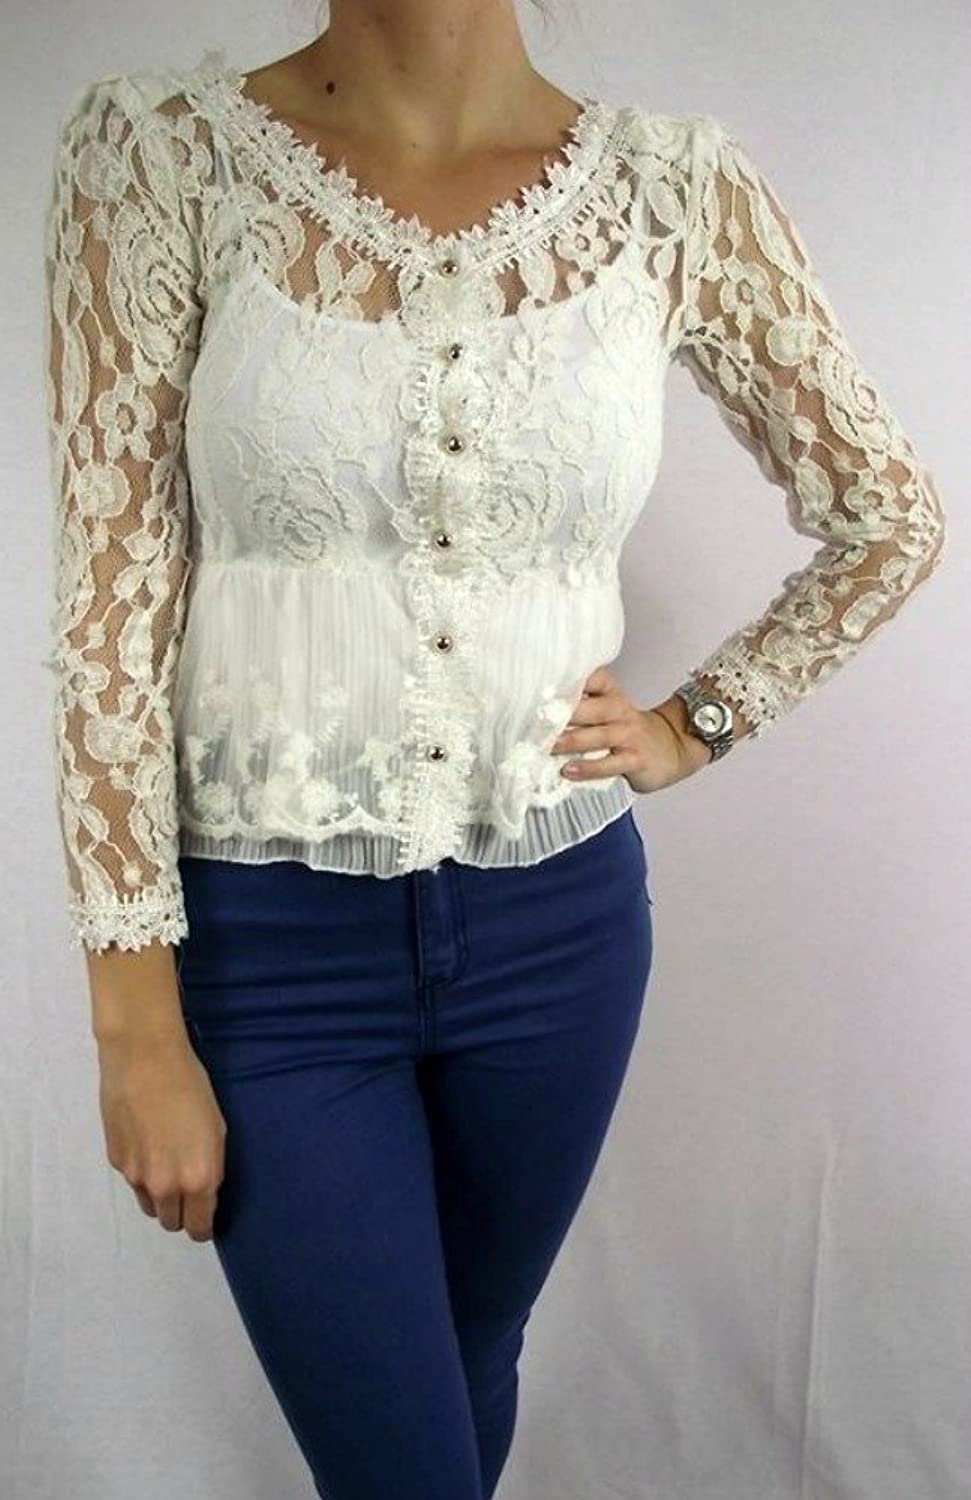 Ladies Womens Cream Lace Crochet Blouse Top Cardigan Sheer Vintage ...